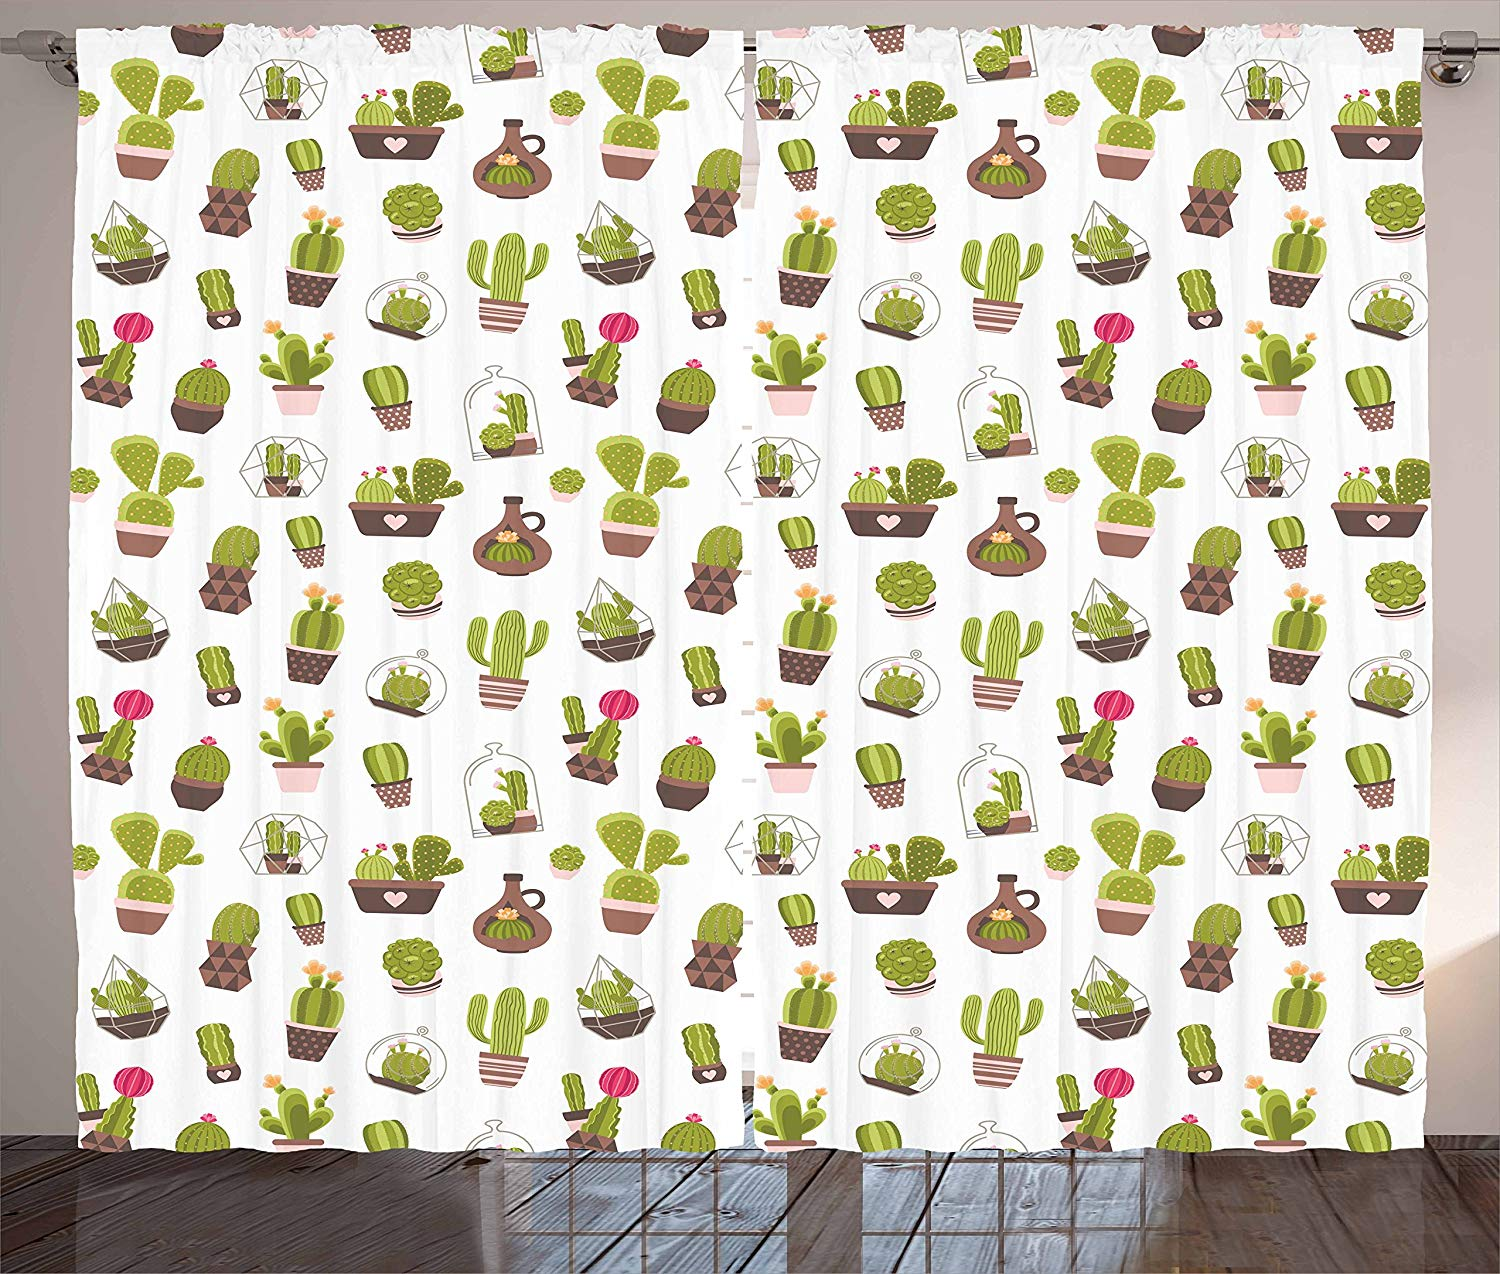 Cactus Curtains Home And Garden Cactus Plants With Flowers Spiny Succulents Arizona Desert Growth Living Room Bedroom Window